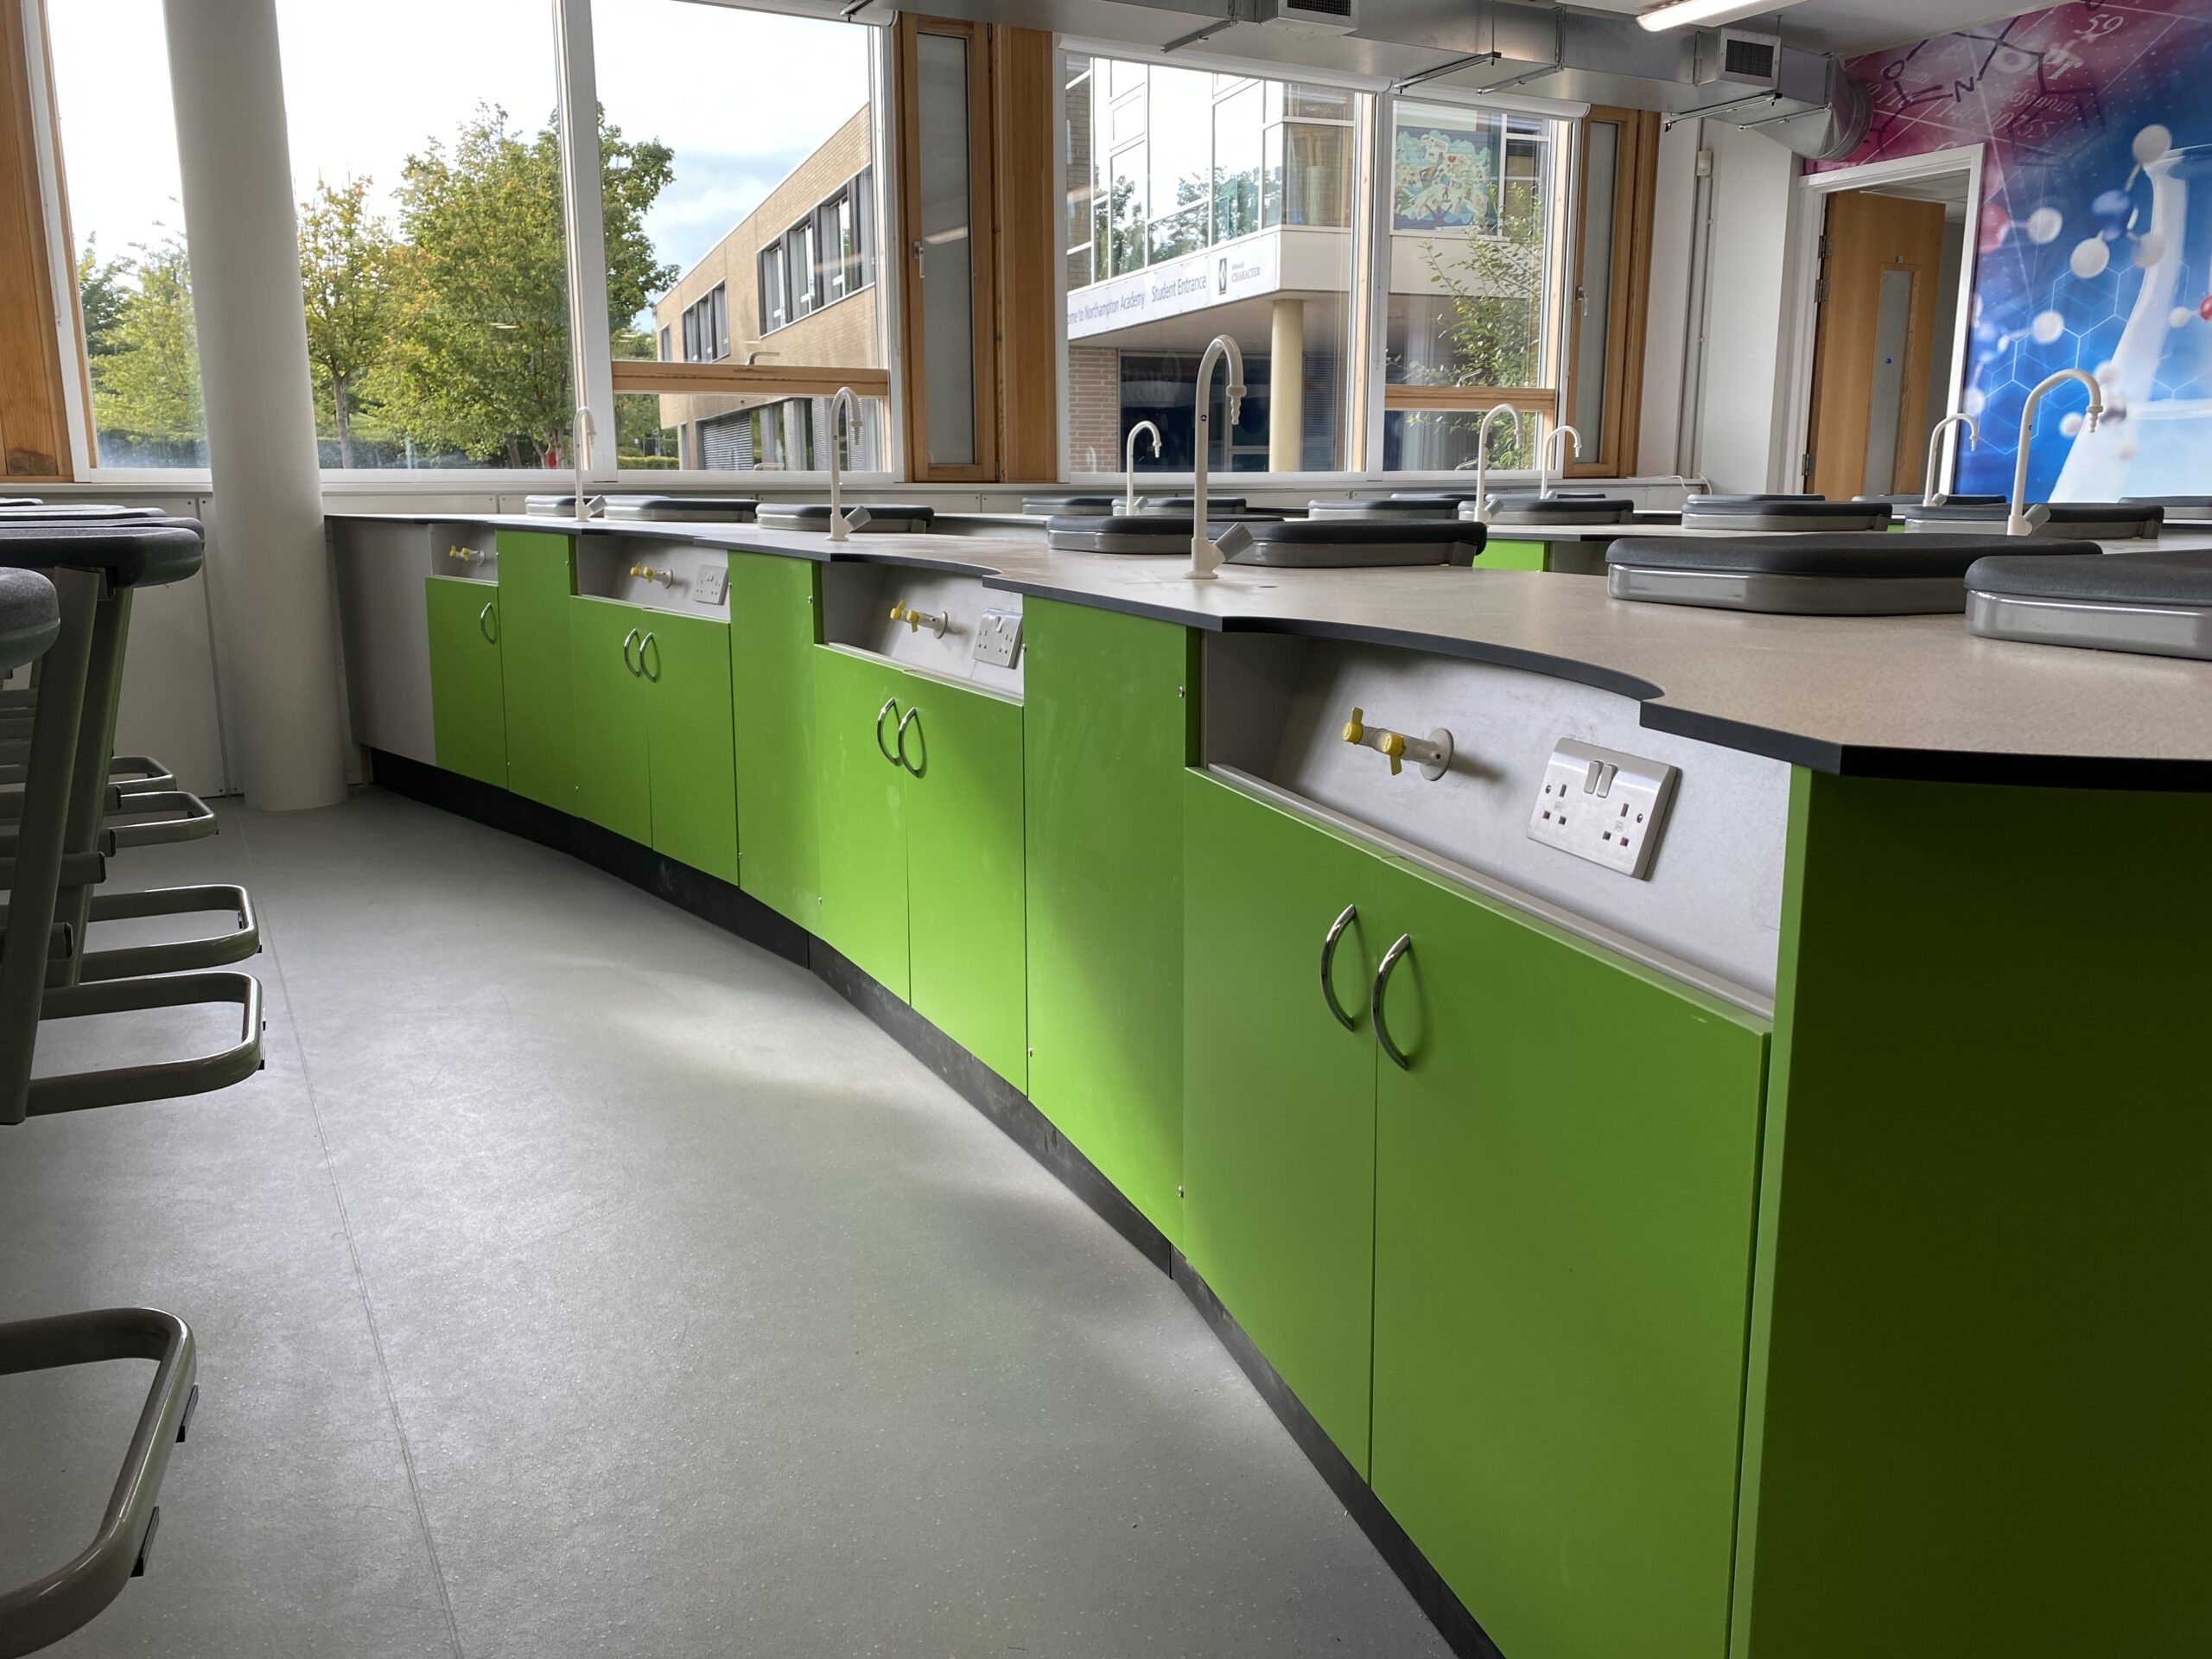 A school laboratory featuring science taps from Arboles UK